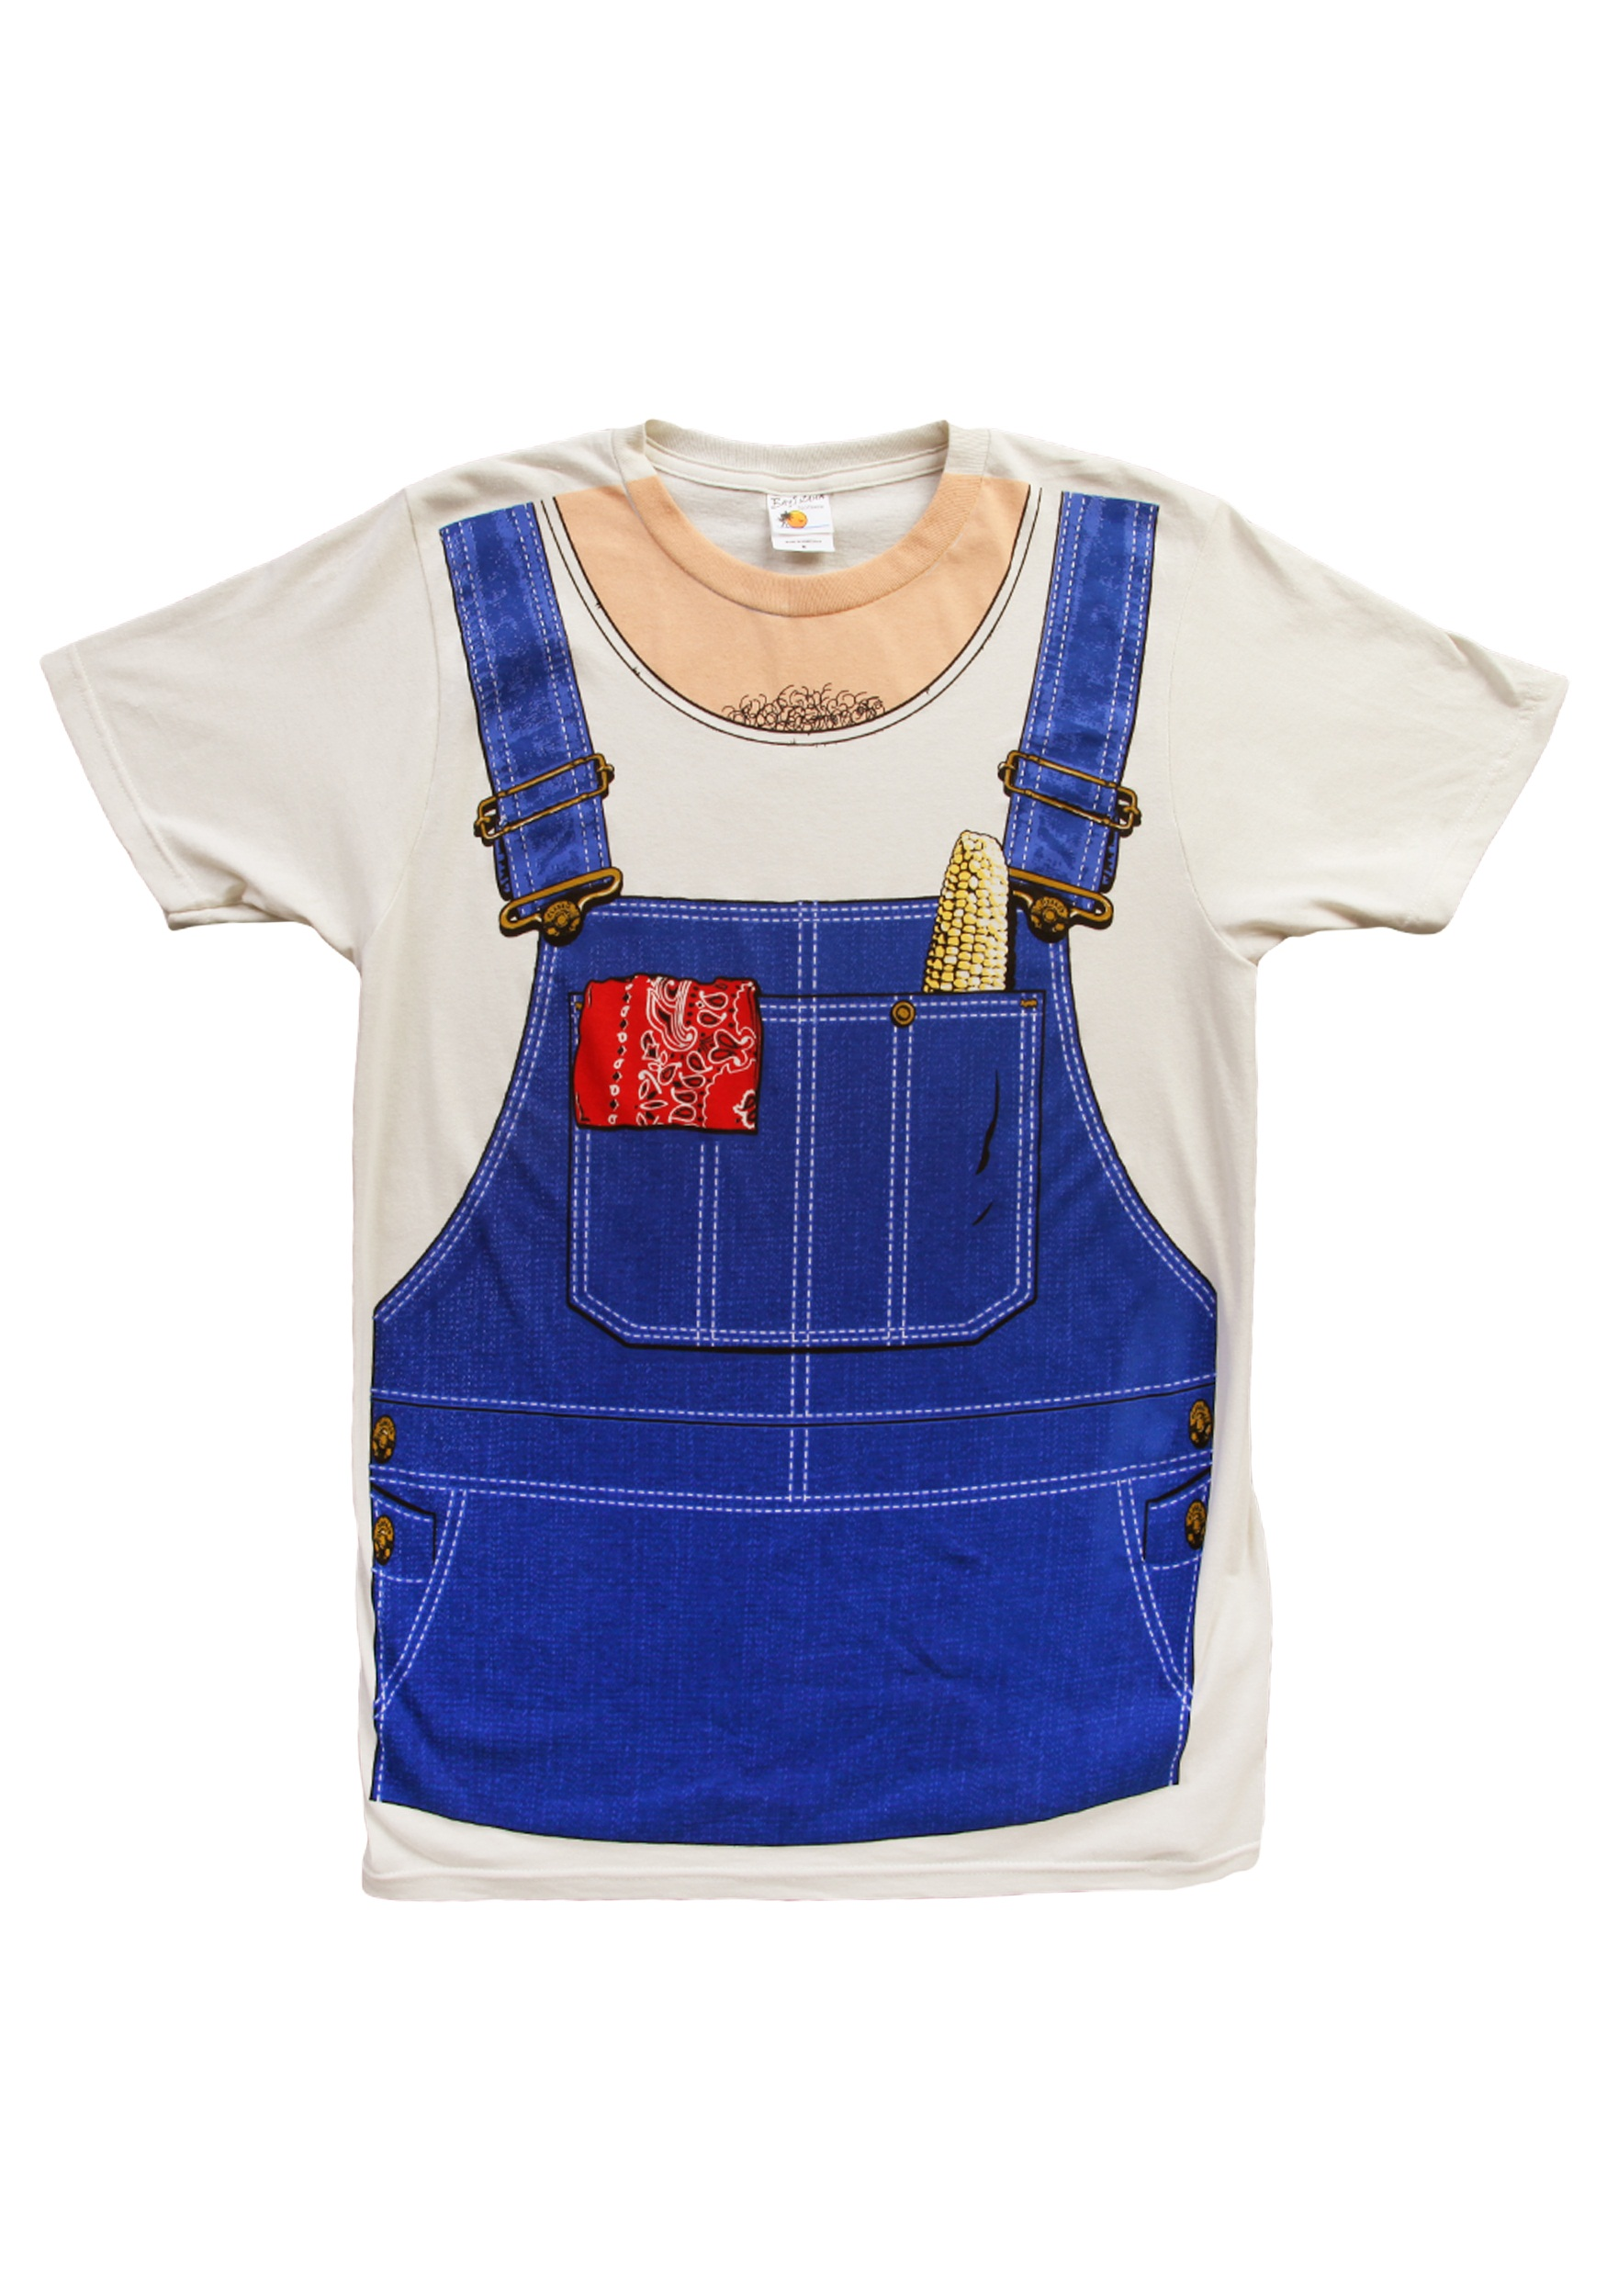 Farmer costume t shirt halloween costumes for Costume t shirts online